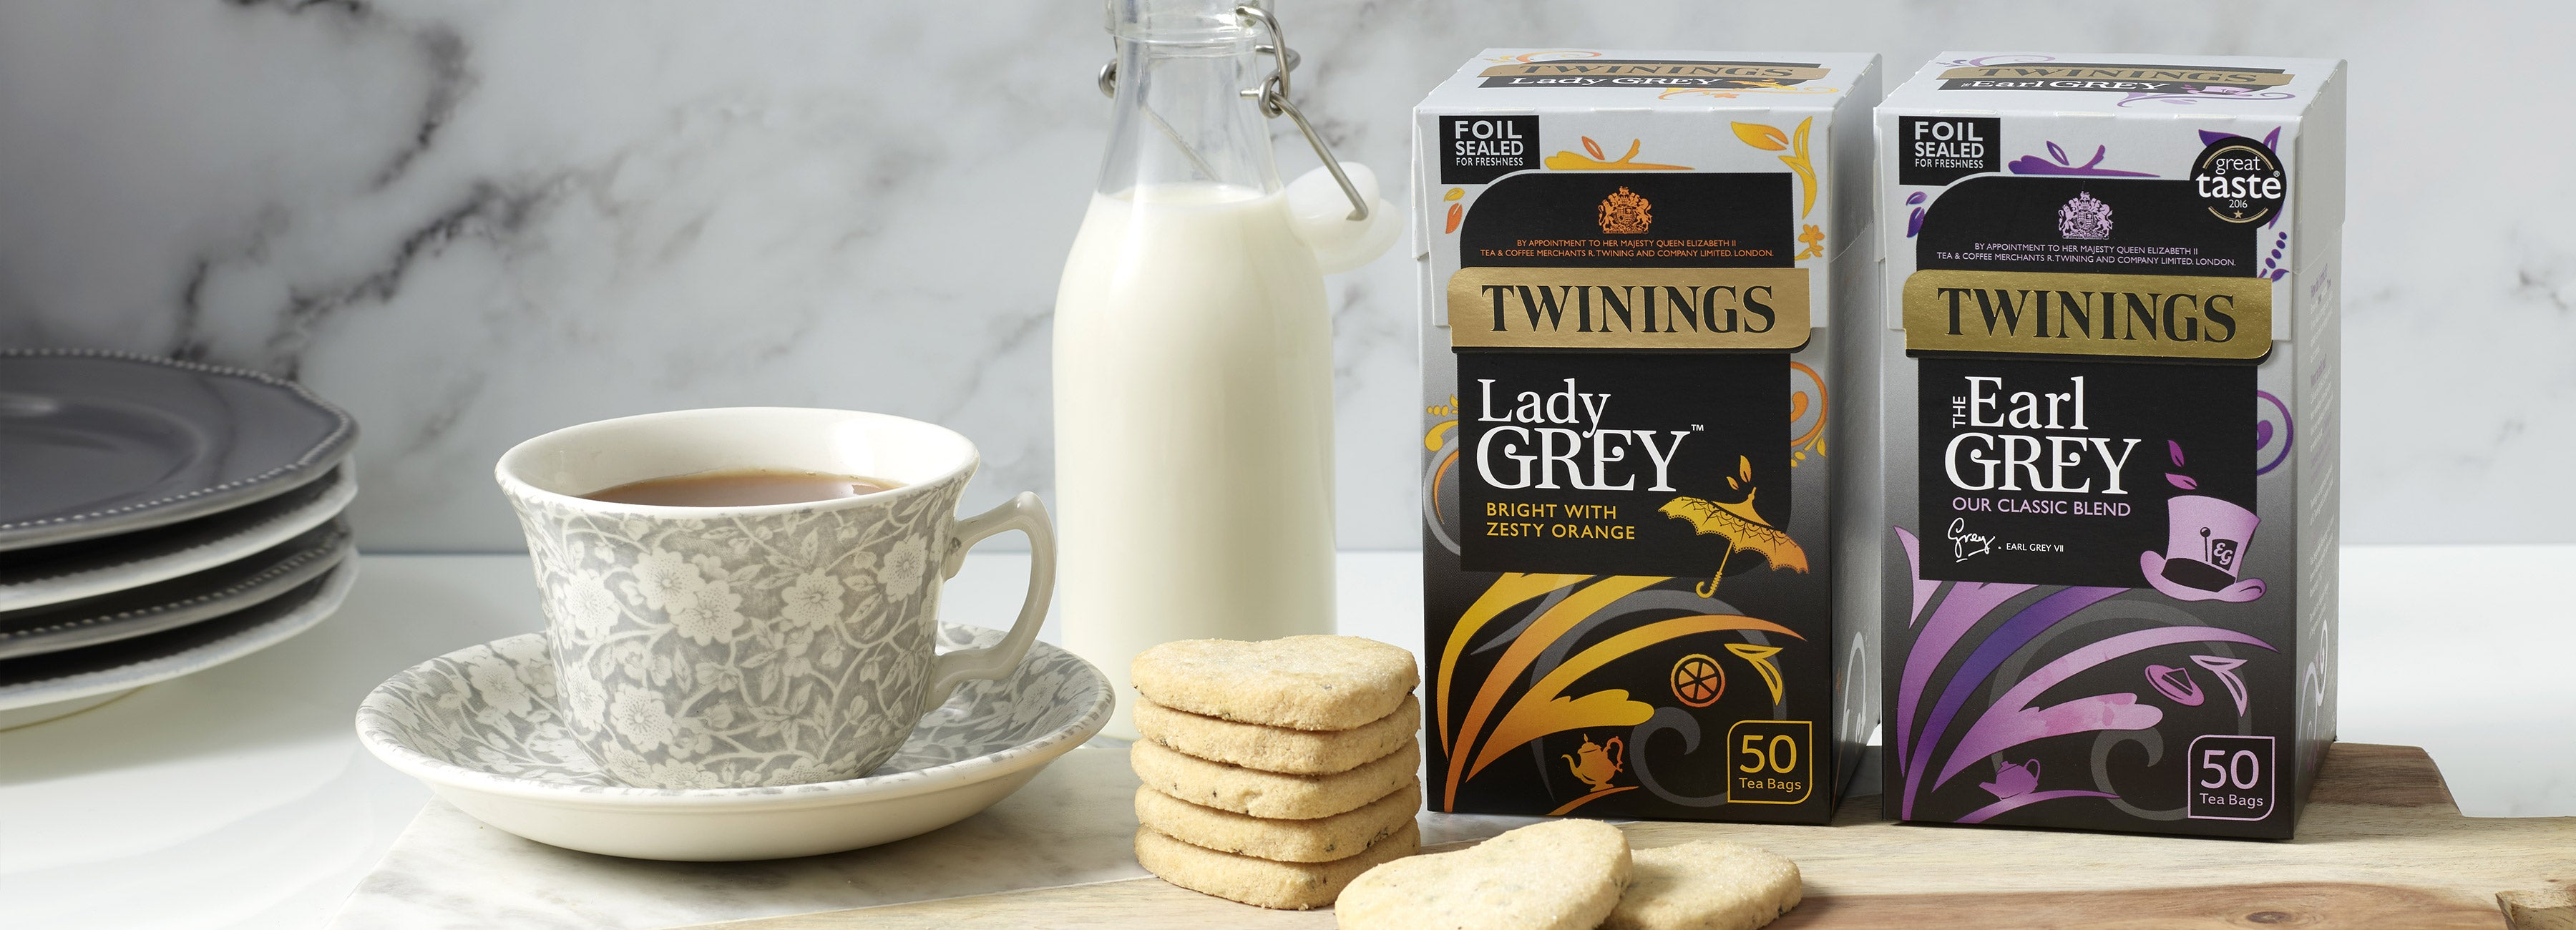 Earl Grey Flavours from Twinings - Discover our Range